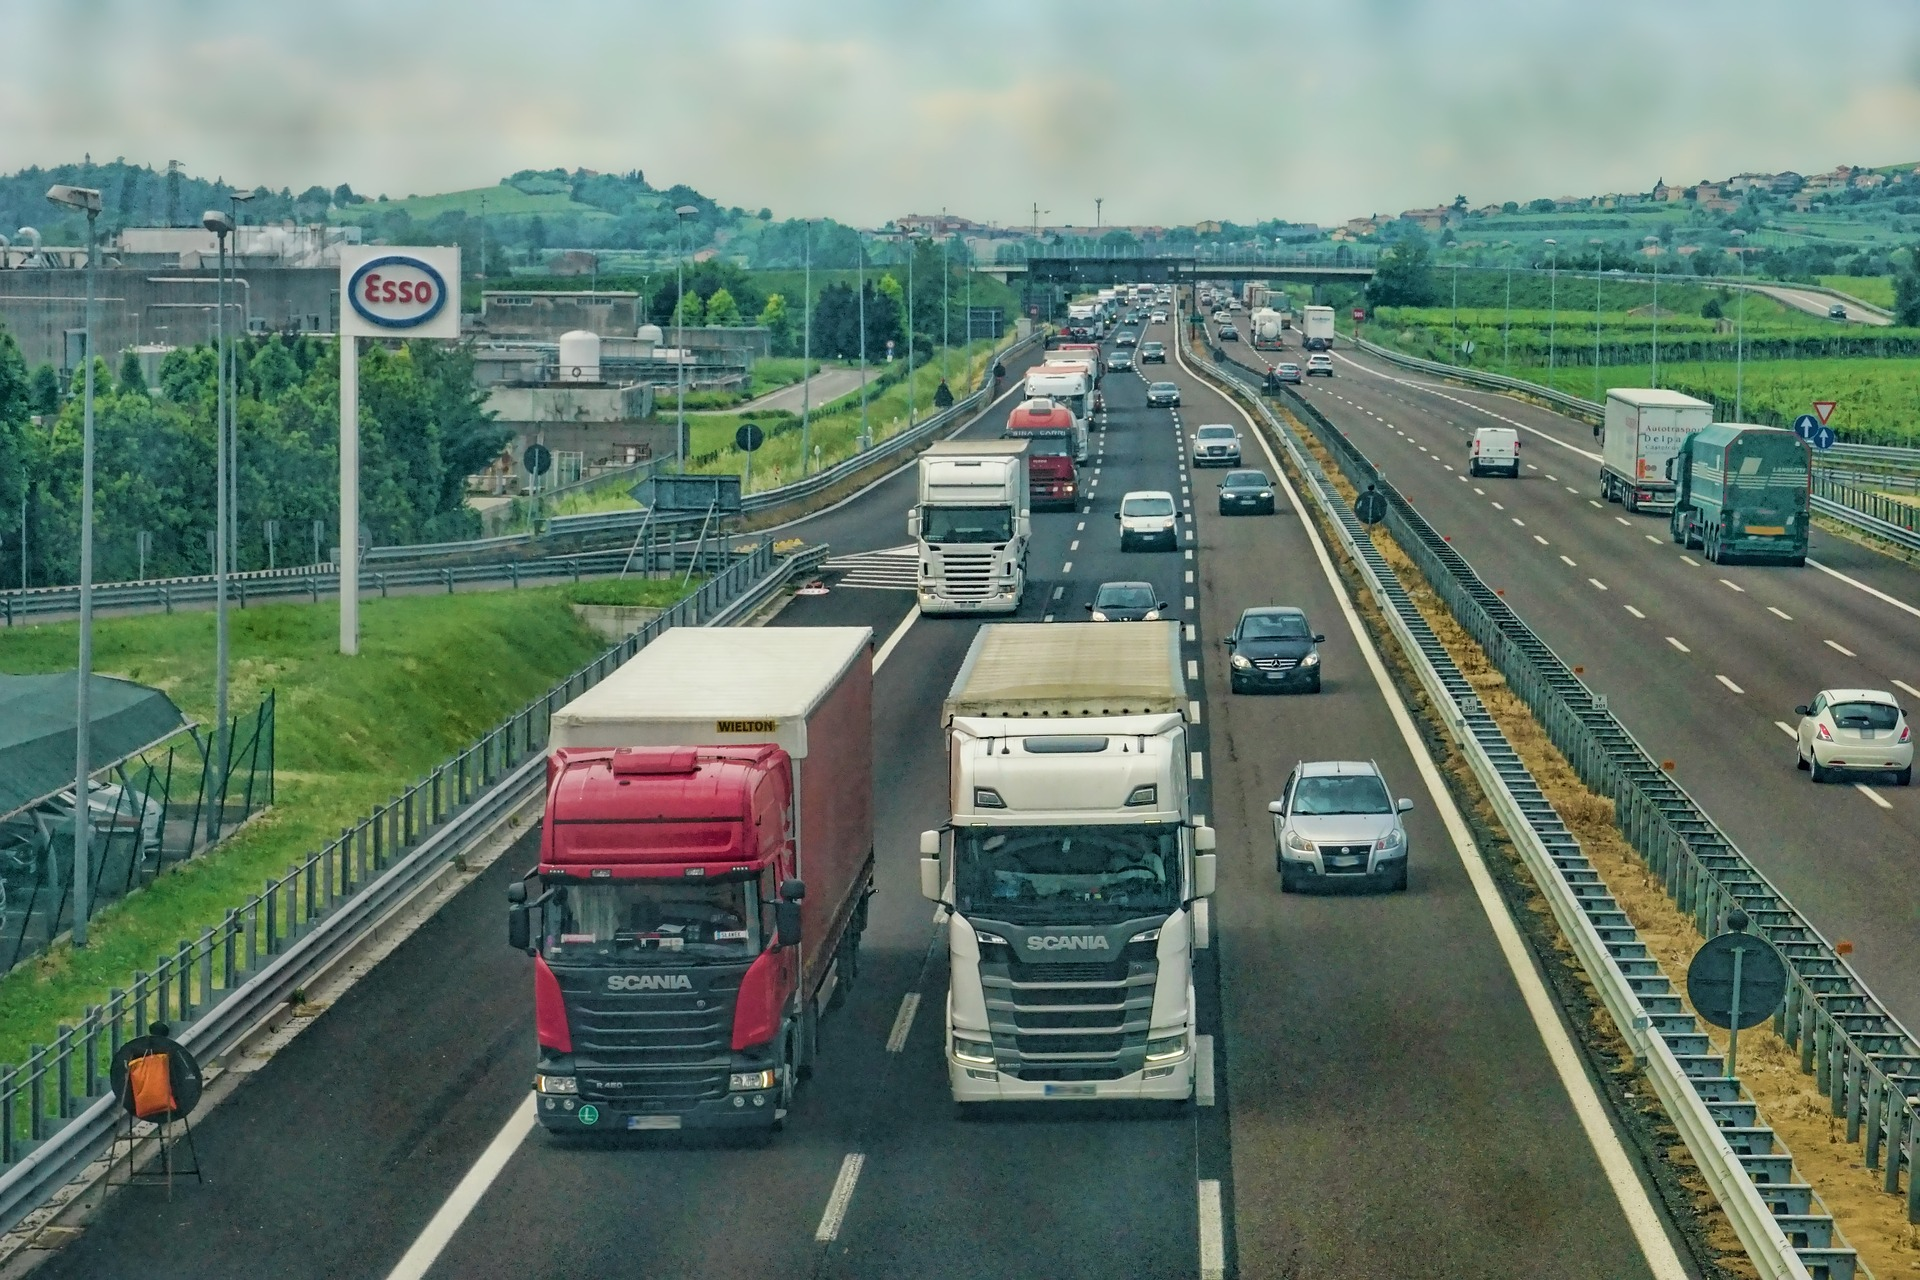 HGV trucks on motorway